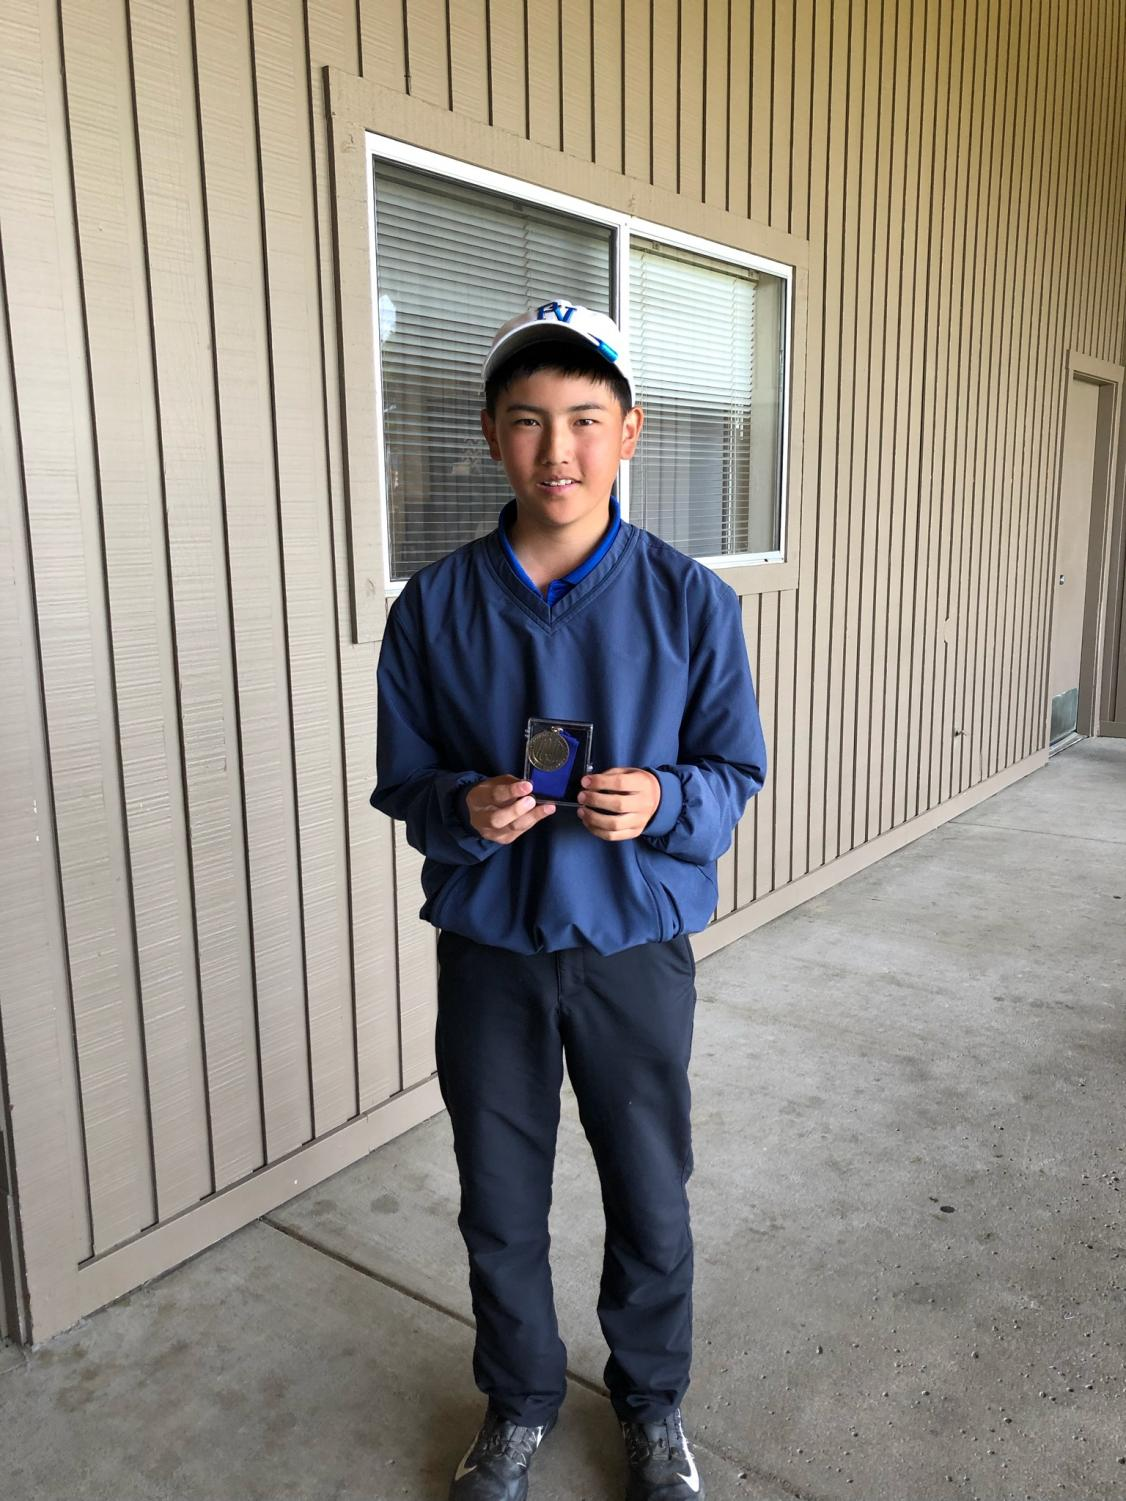 Tyler Momono with his TCAL Championship Medal. Next stop: NCS.